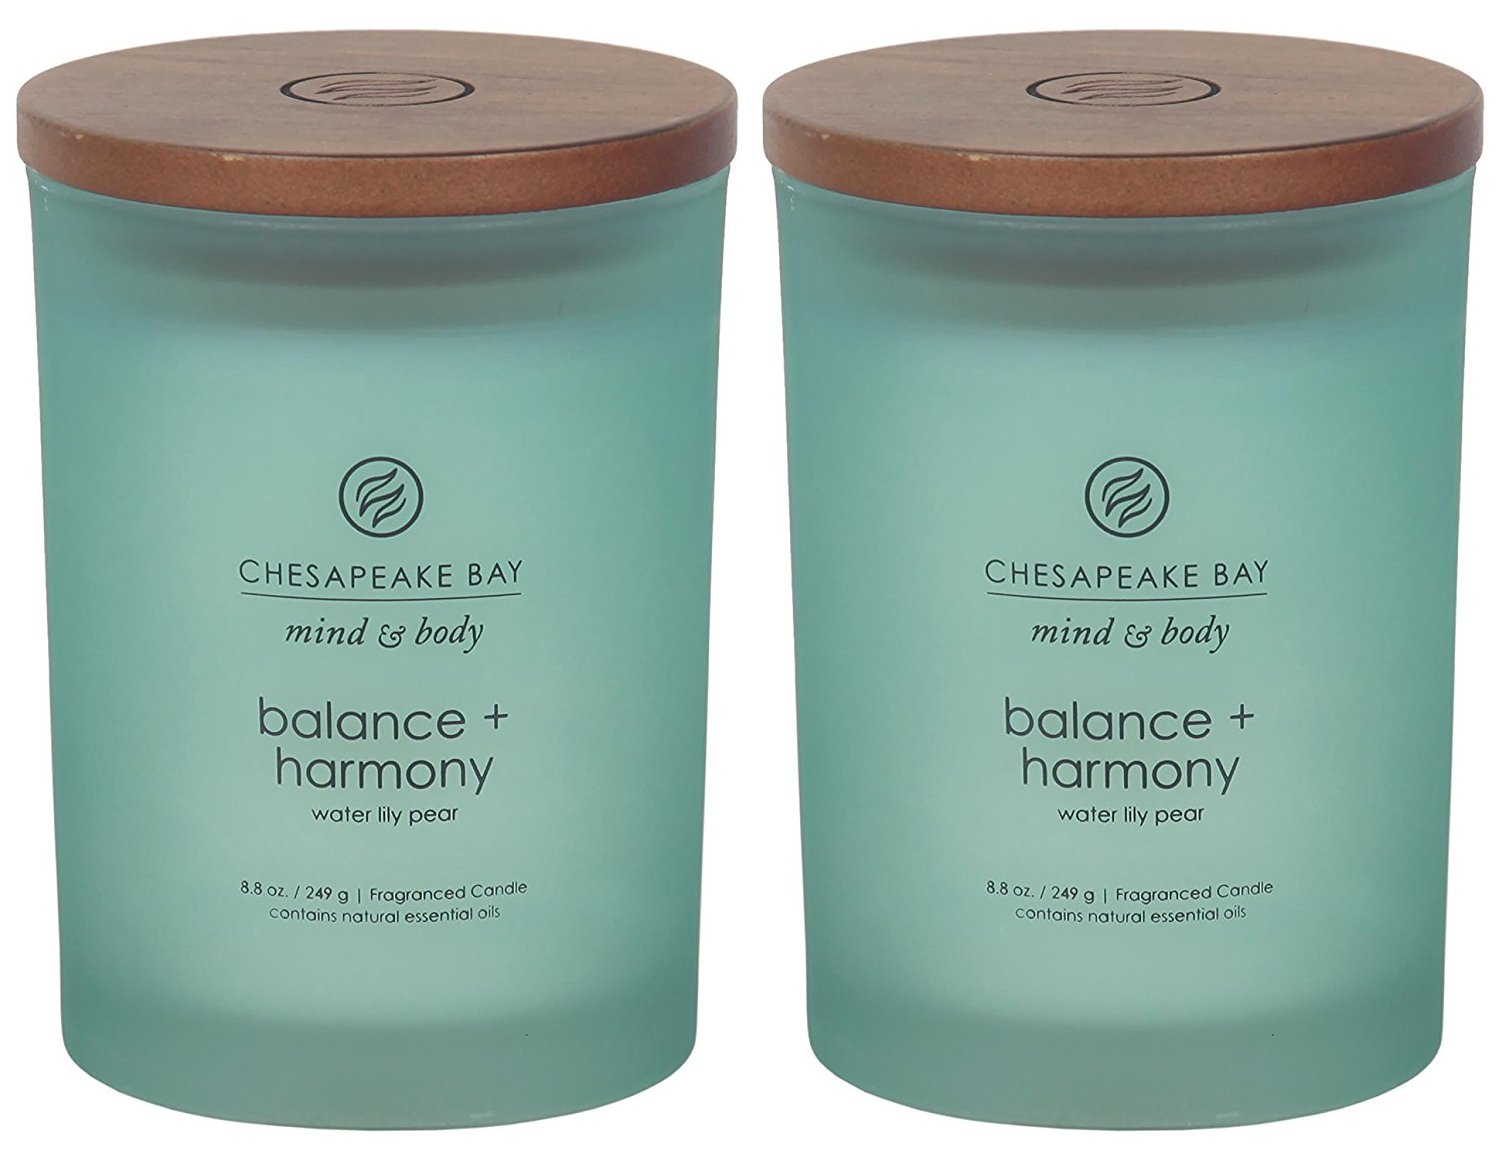 Chesapeake Bay Candle Scented Candles, Balance + Harmony (Water Lily Pear), Medium (2-Pack)